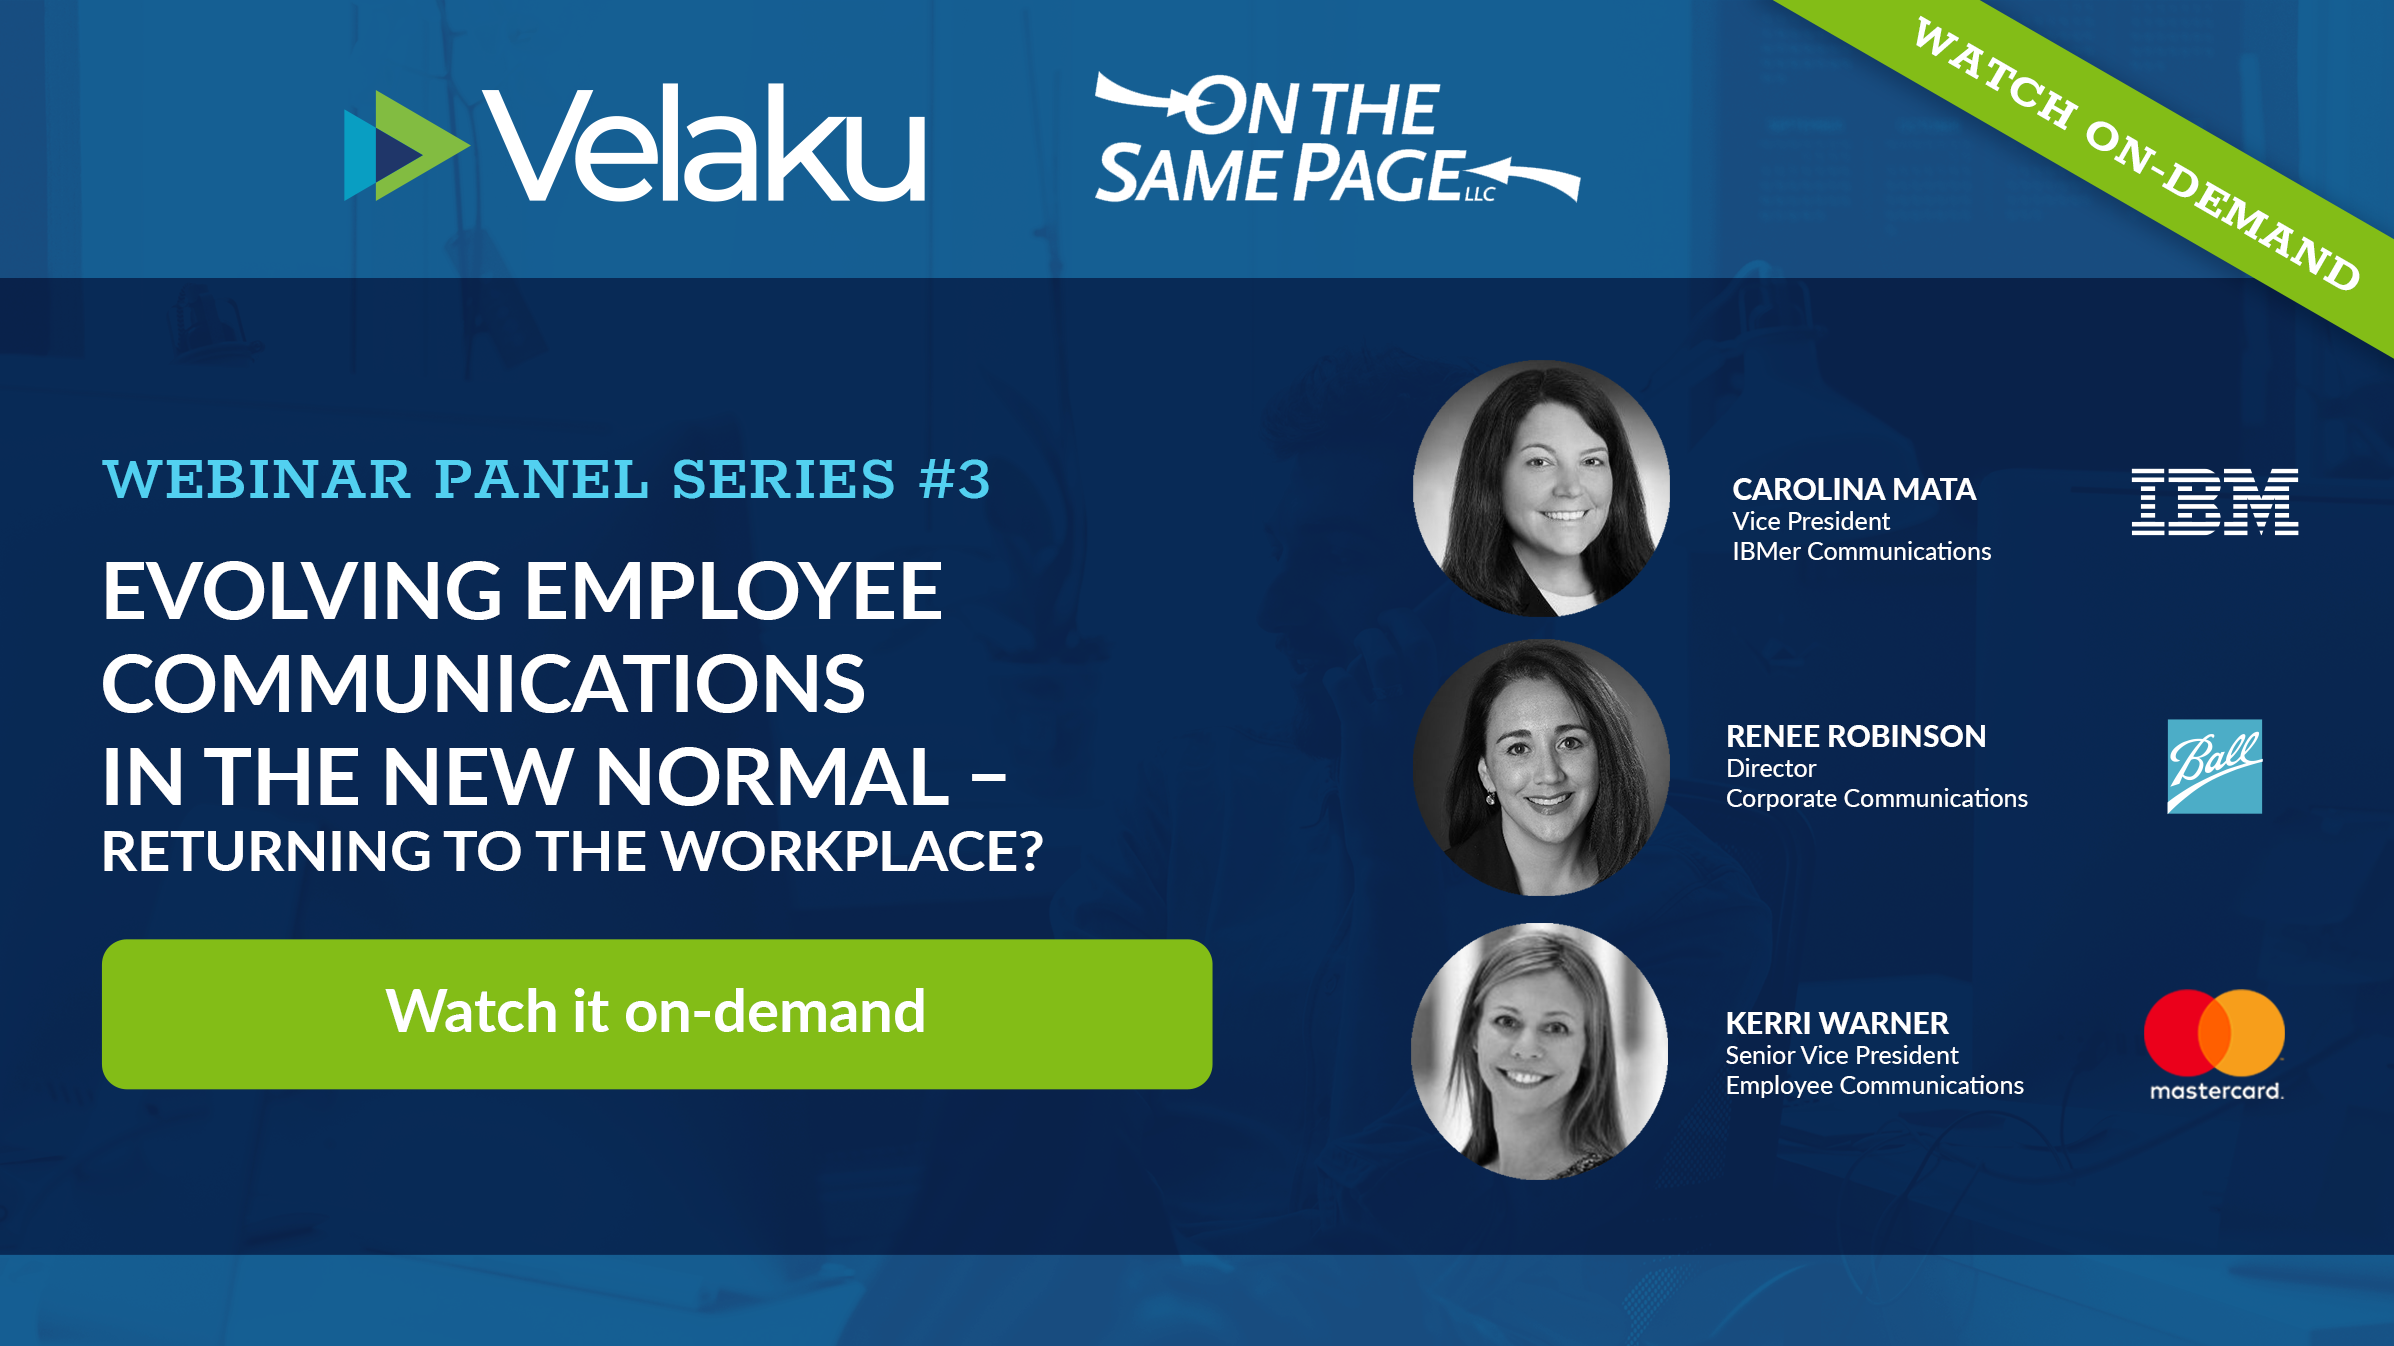 Webinar #3 - Evolving Employee Communications - Returning to the Workplace?